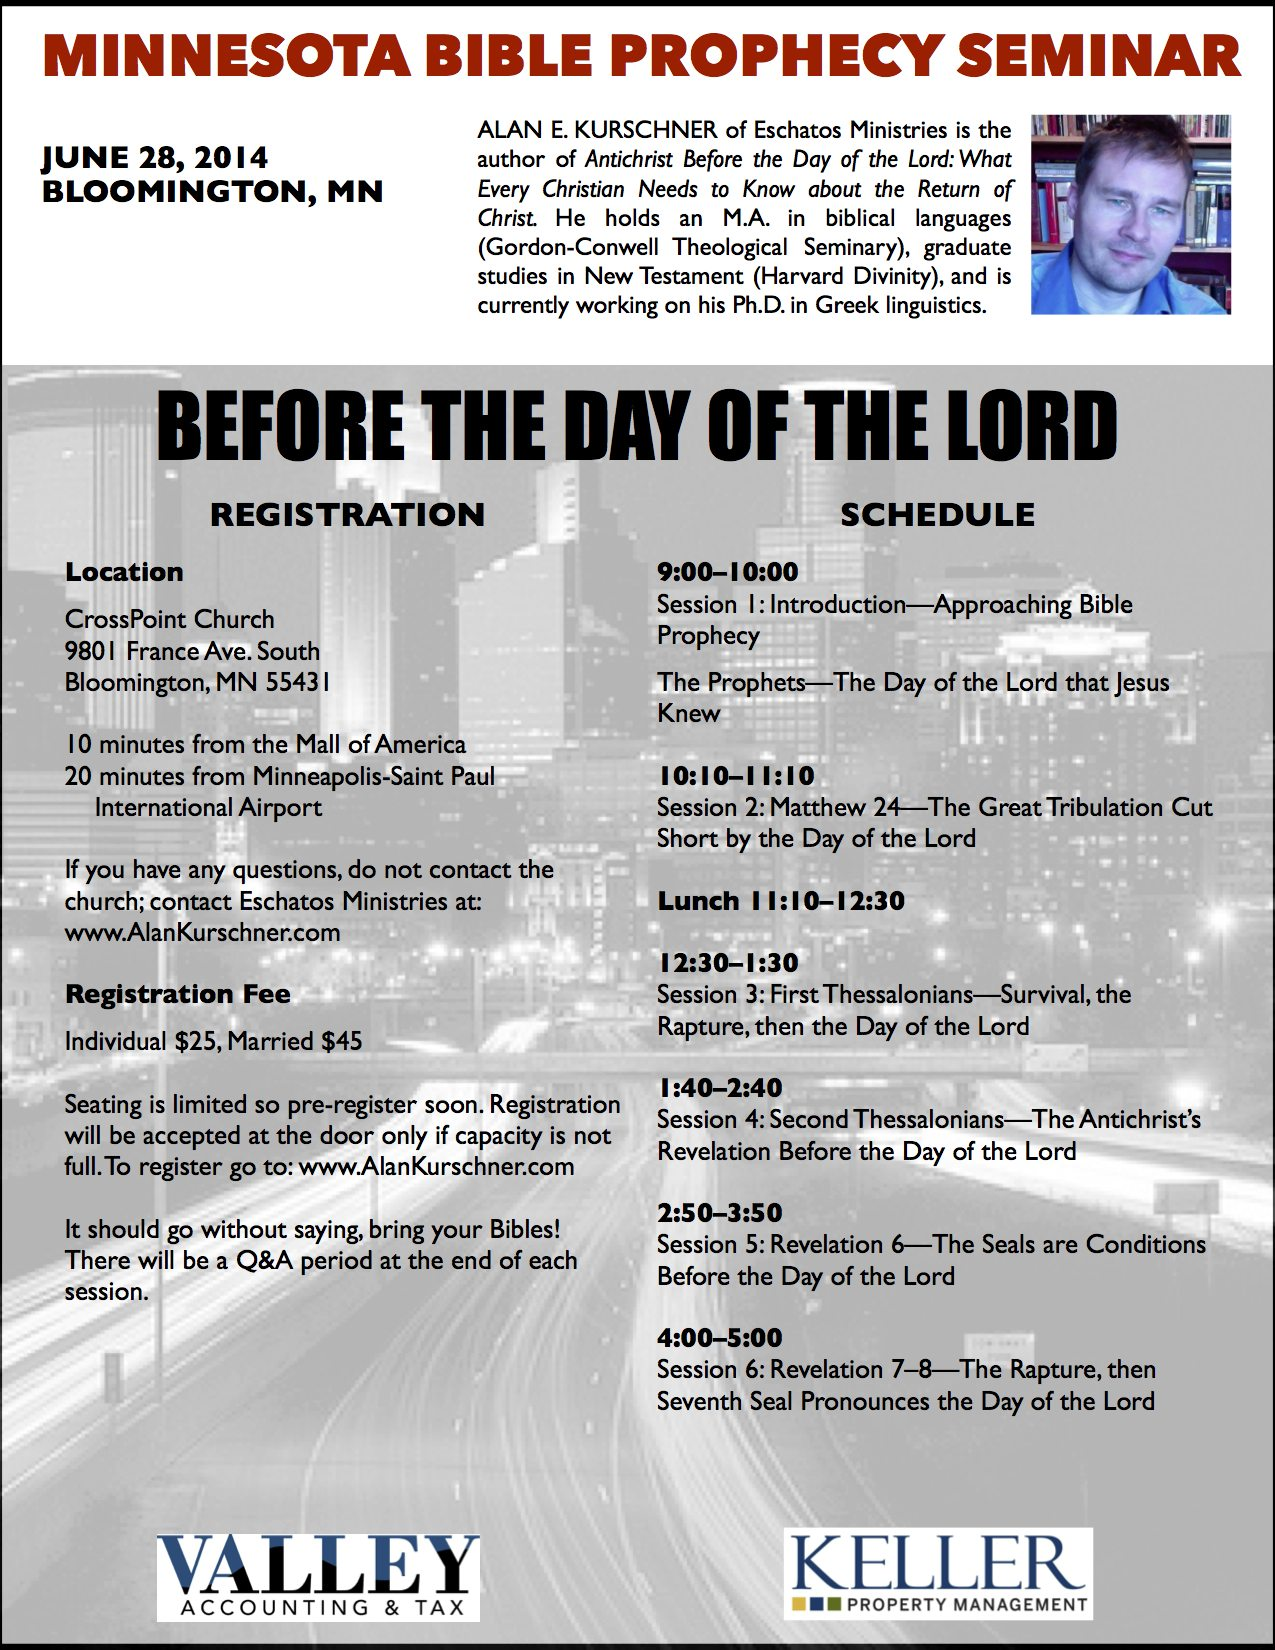 MINNESOTA BIBLE PROPHECY SEMINAR – June 28, 2014